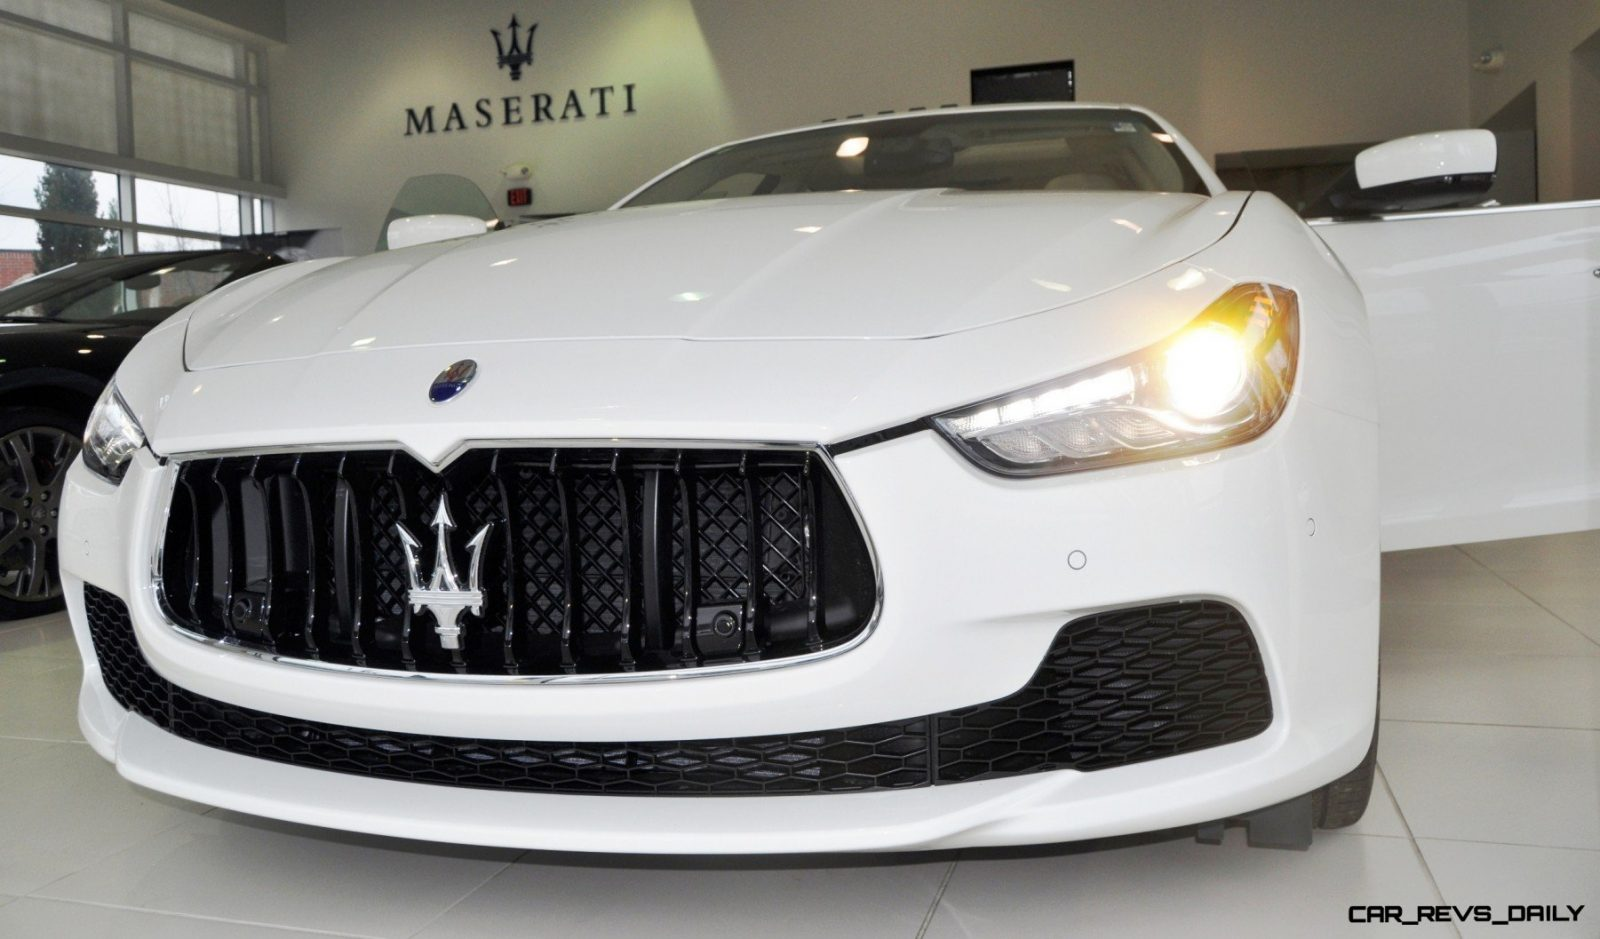 2014 Maserati Ghibli Q4 -- Interior Feels Luxe and High-Quality, But Back Seat A Bit Tight 16